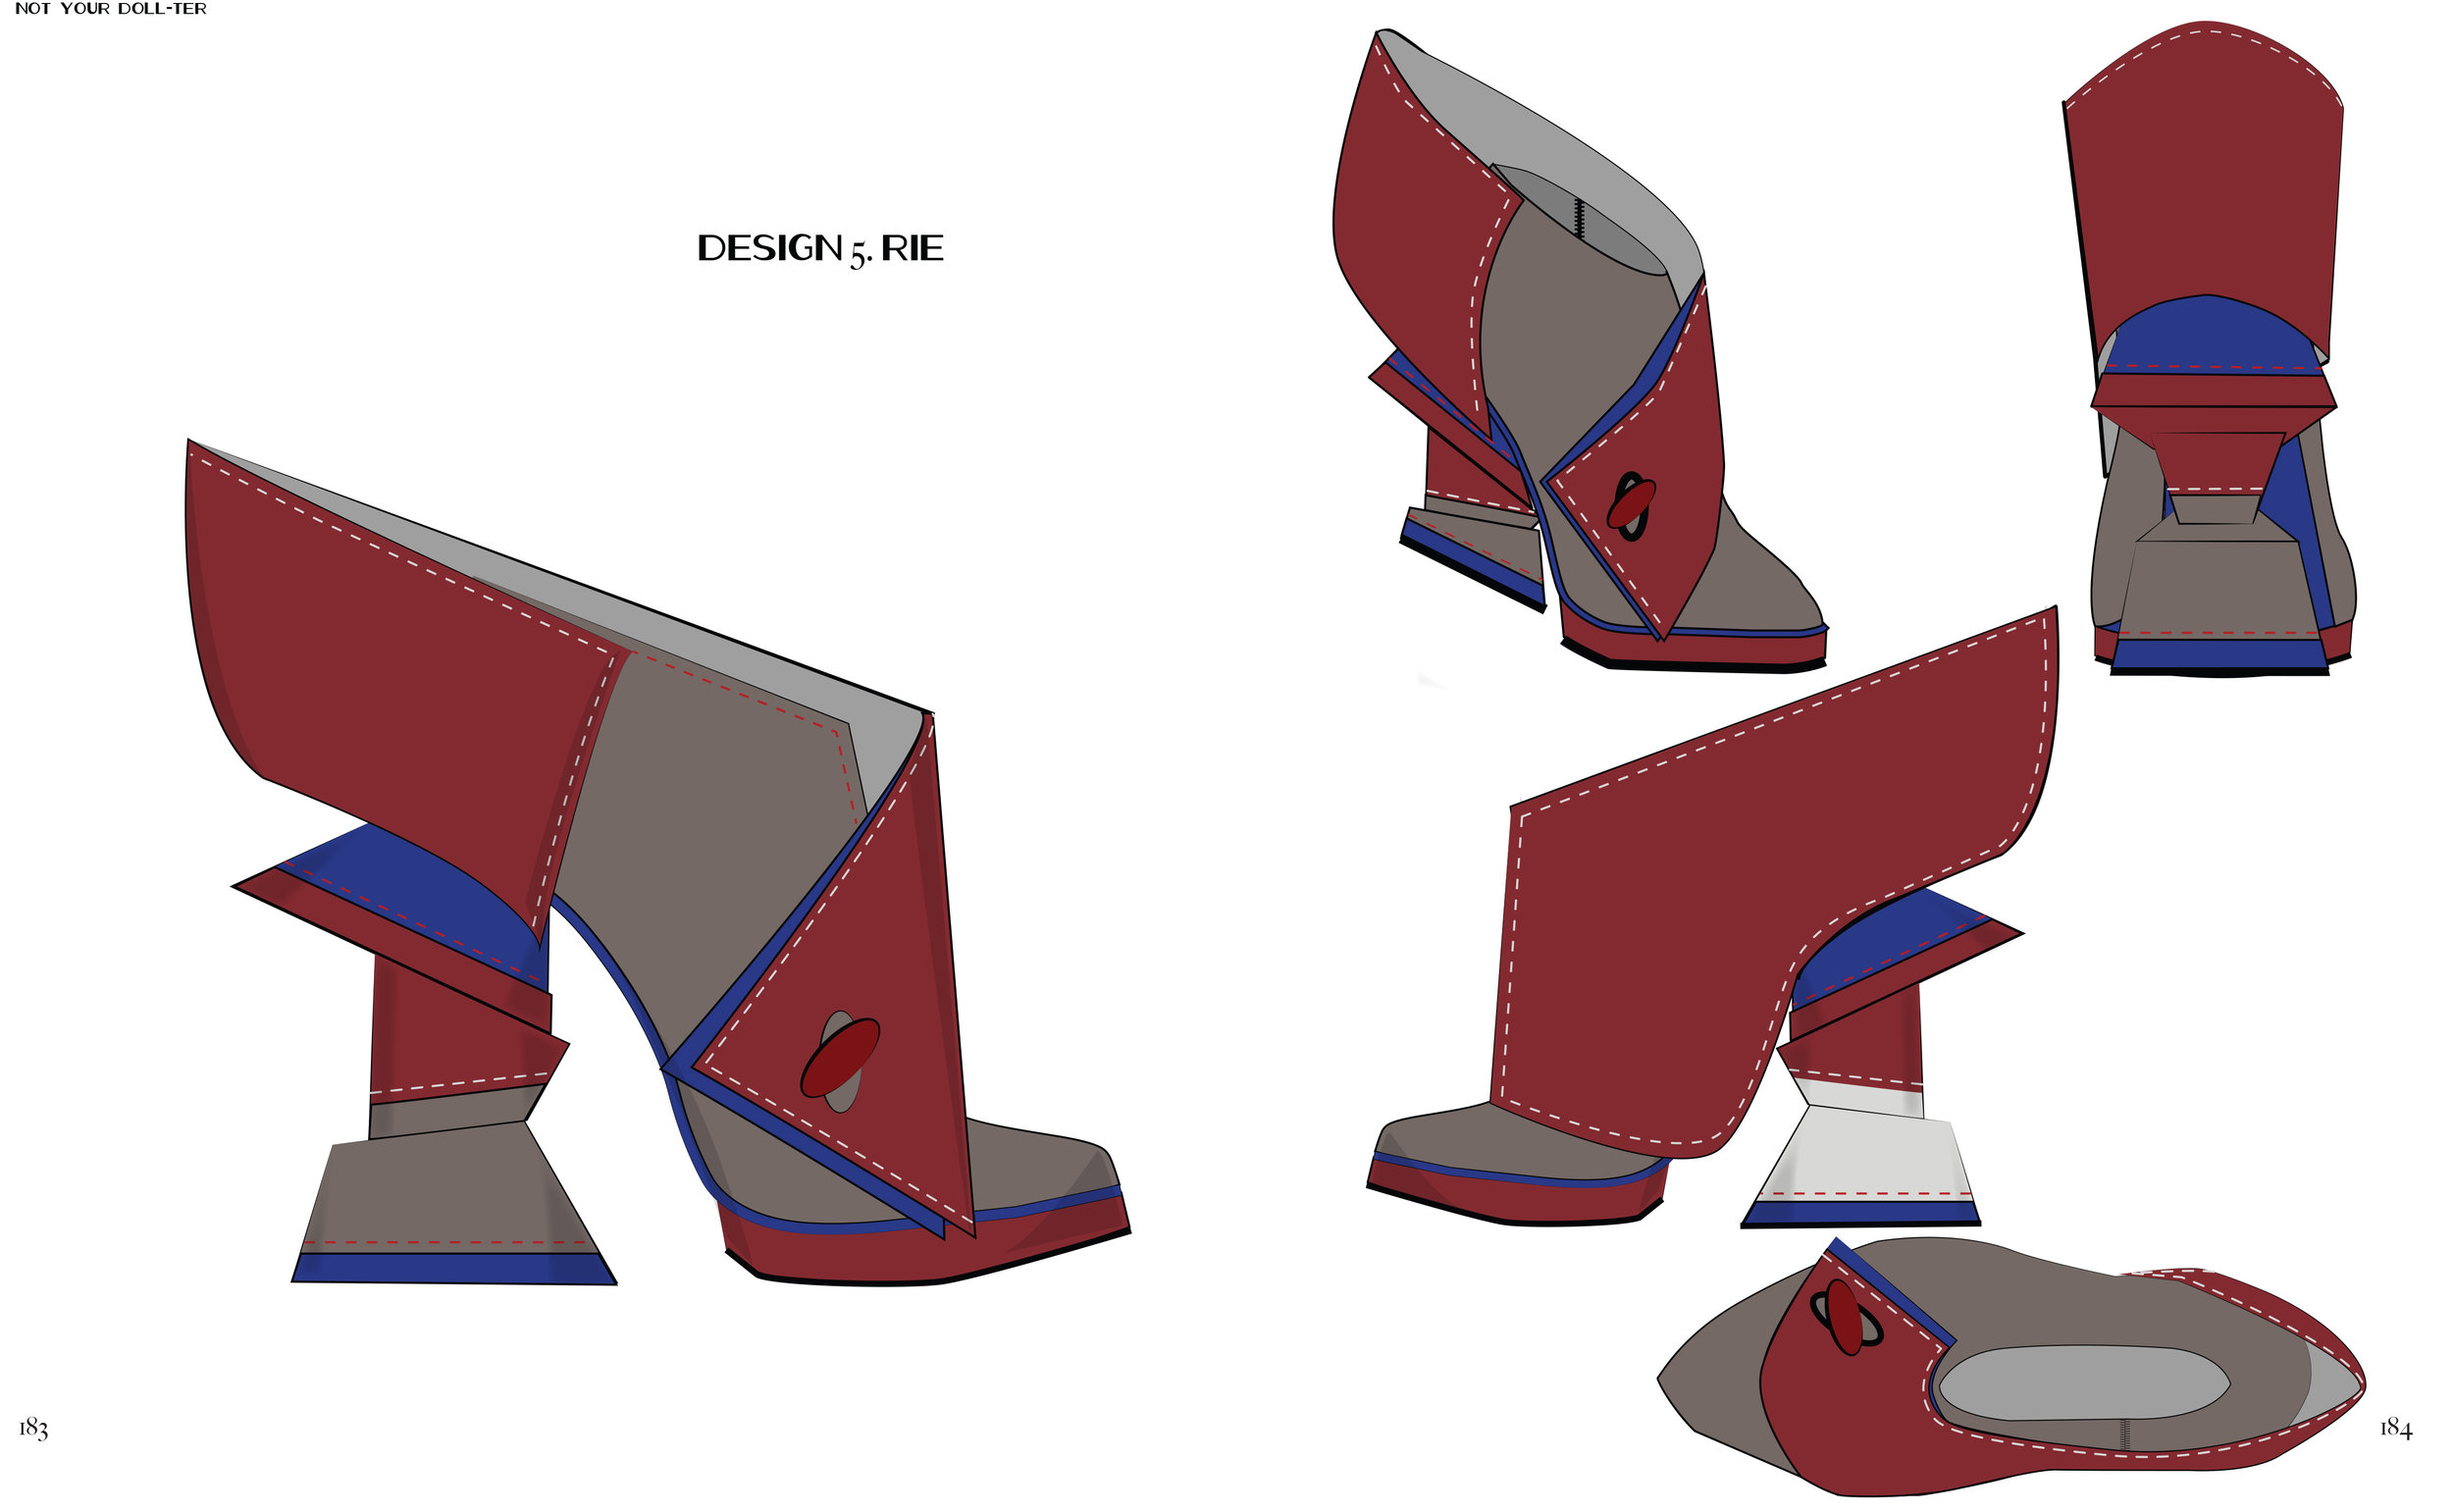 183_184_SP_PG_shoes_portfolio_pg_22.jpg